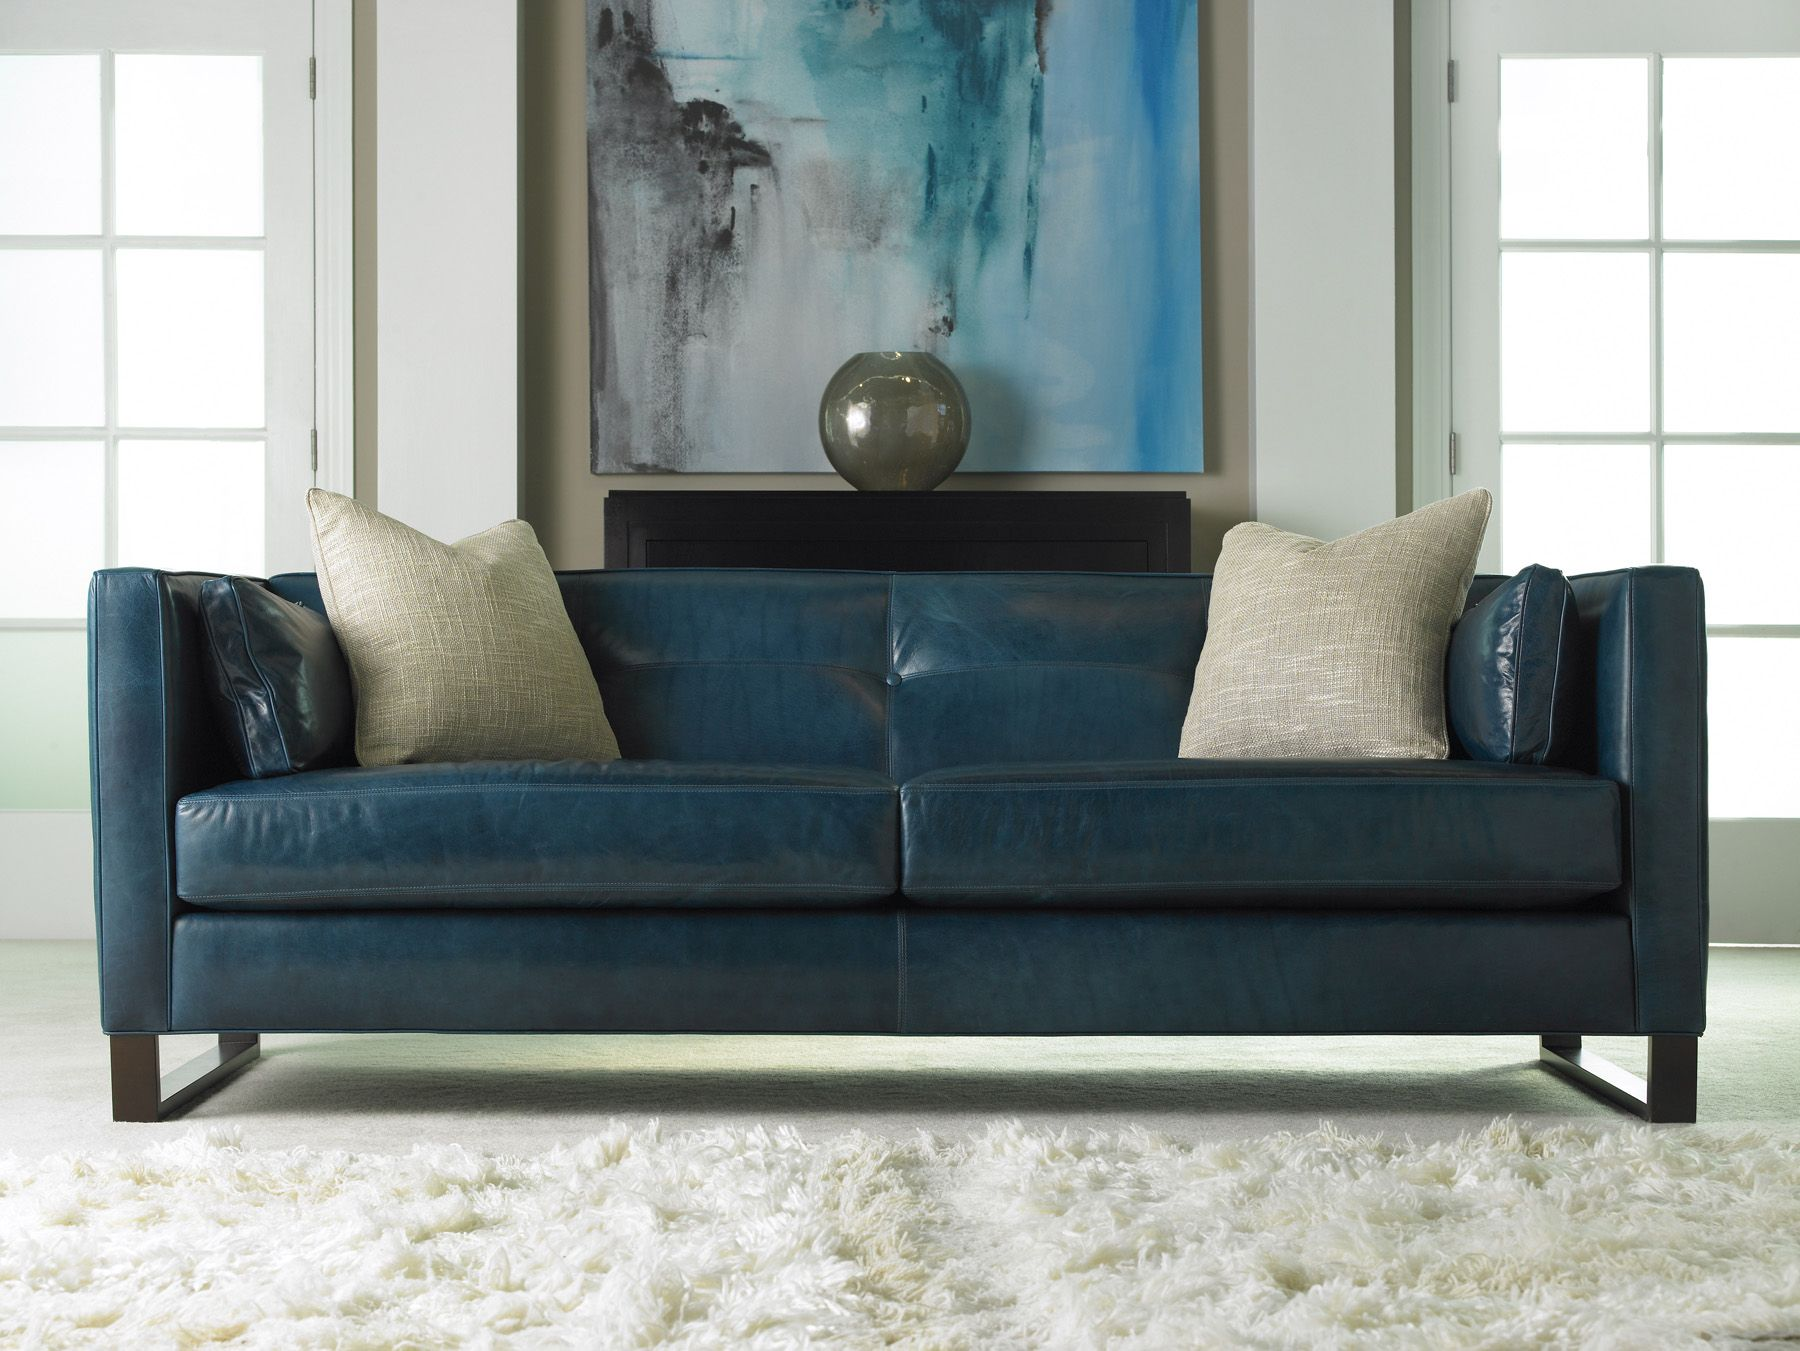 Enjoyable Modern Blue Leather Sofa And Gorgeous Art Work In 2019 Inzonedesignstudio Interior Chair Design Inzonedesignstudiocom